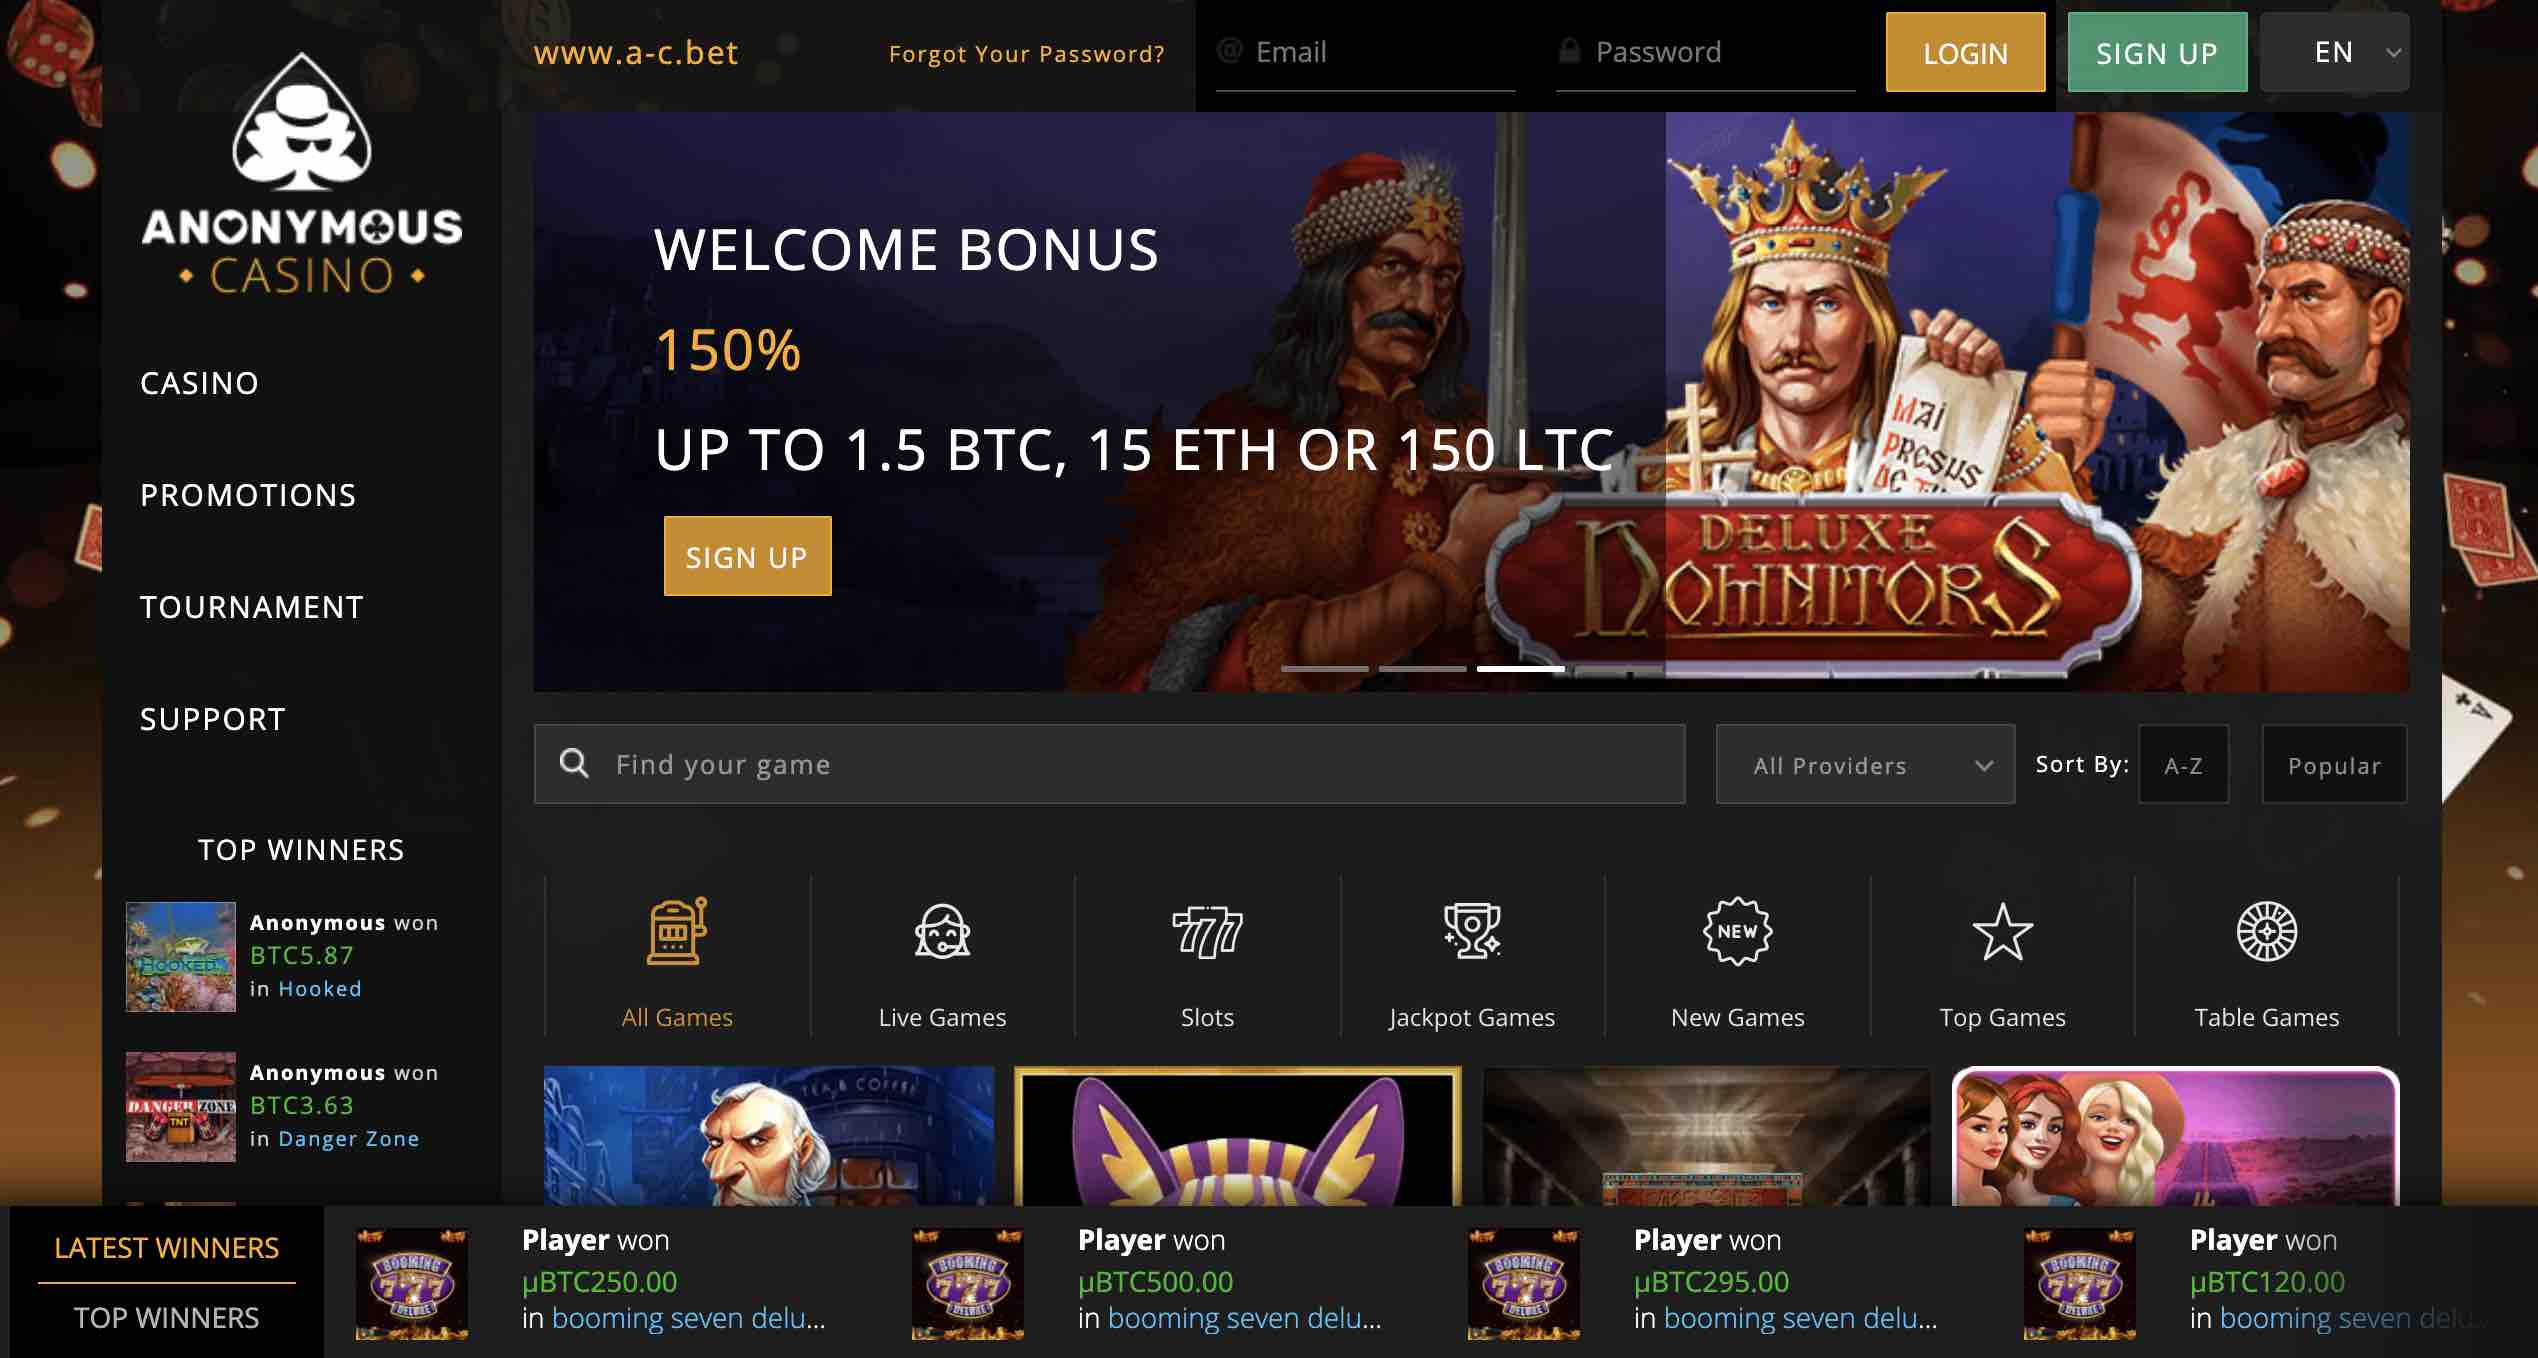 Join Anonymous Casino